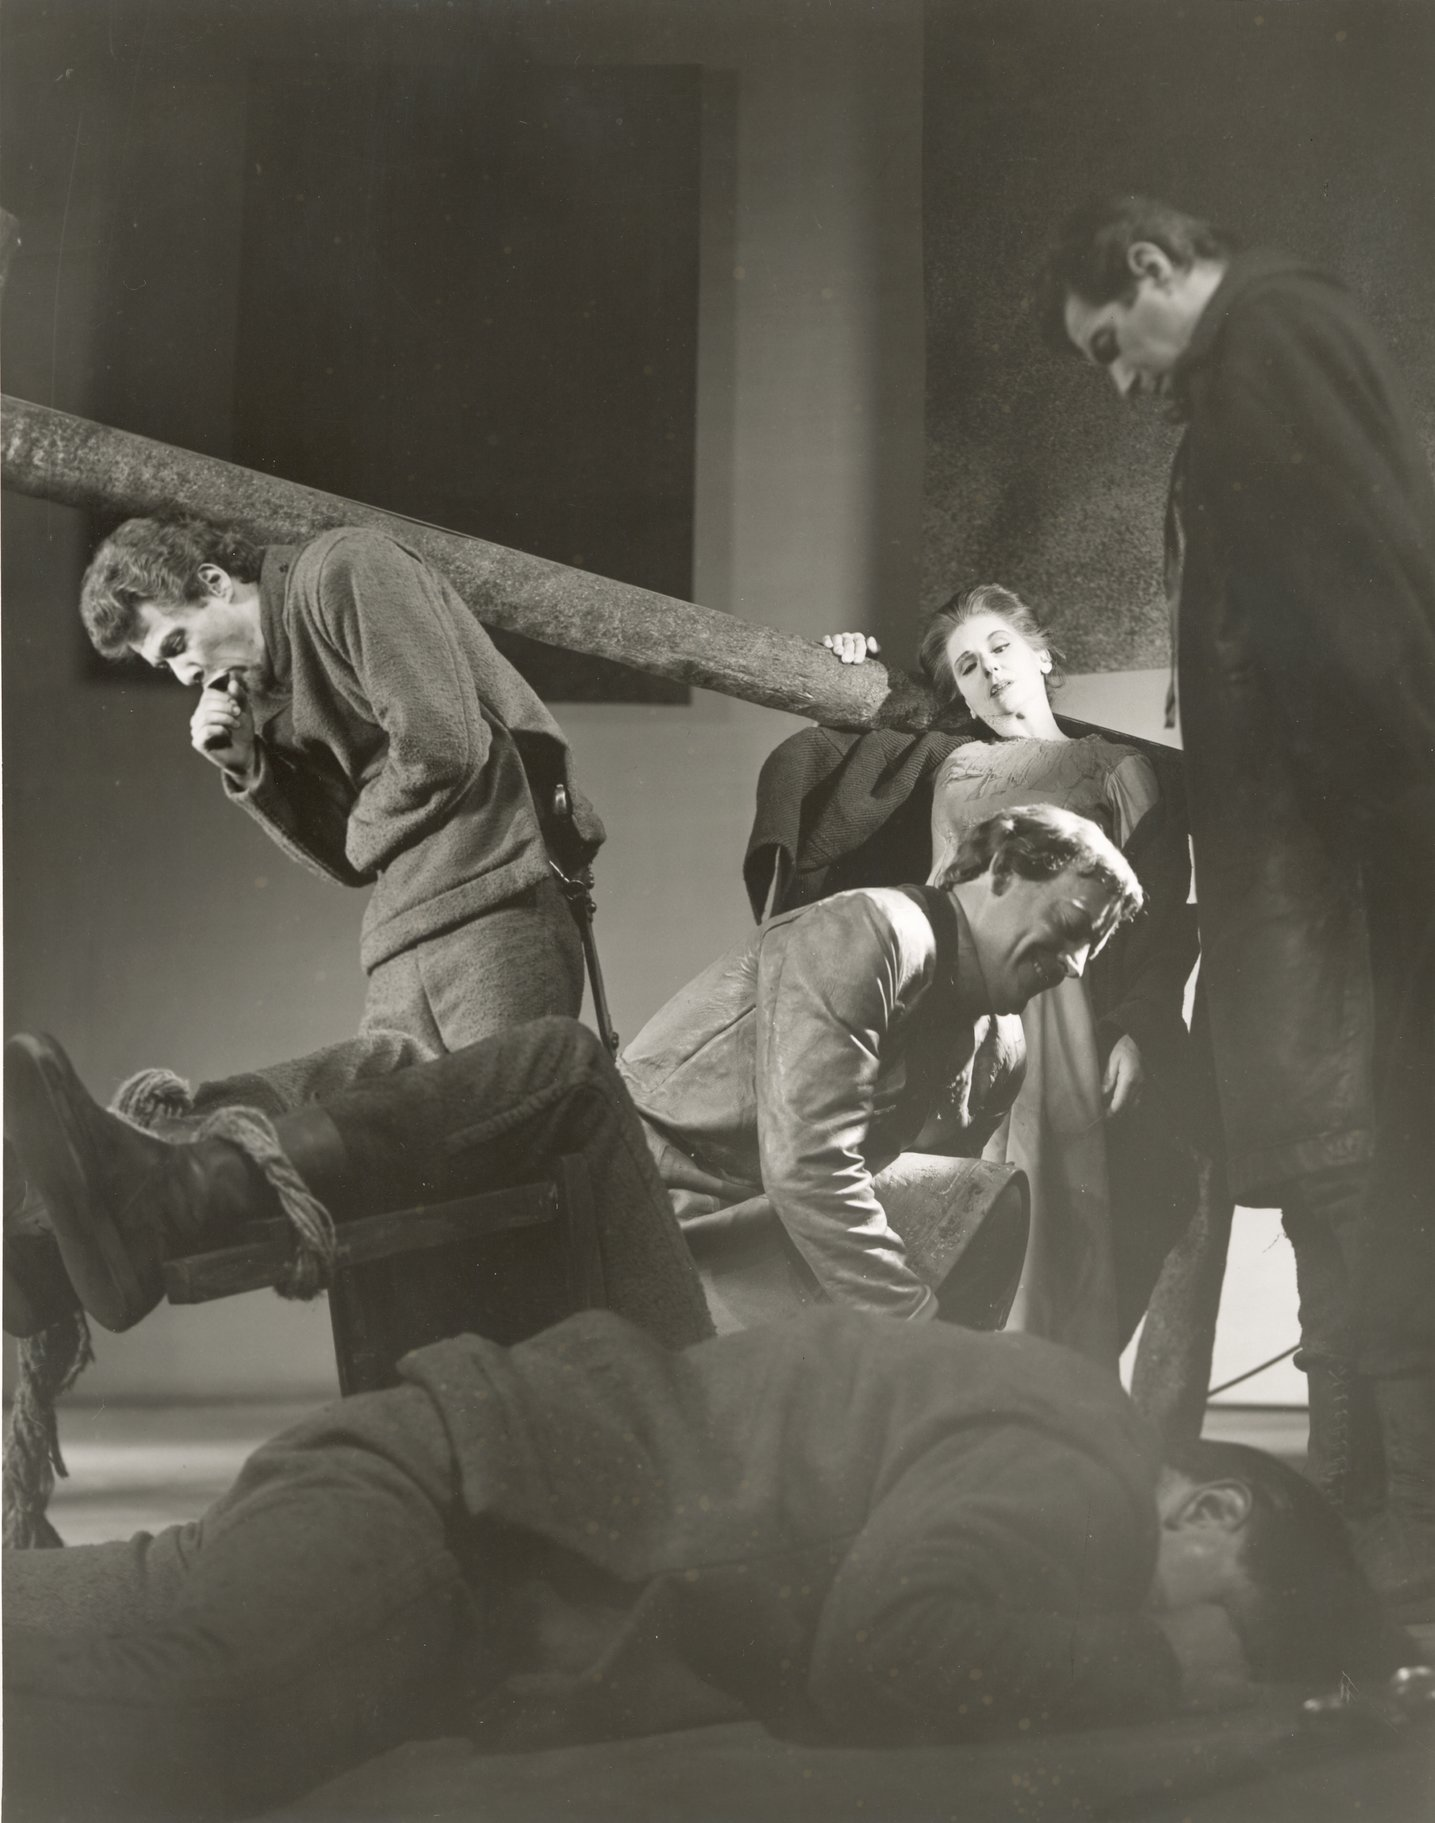 A man lies on the floor rubbing his eyes as others stand over him.